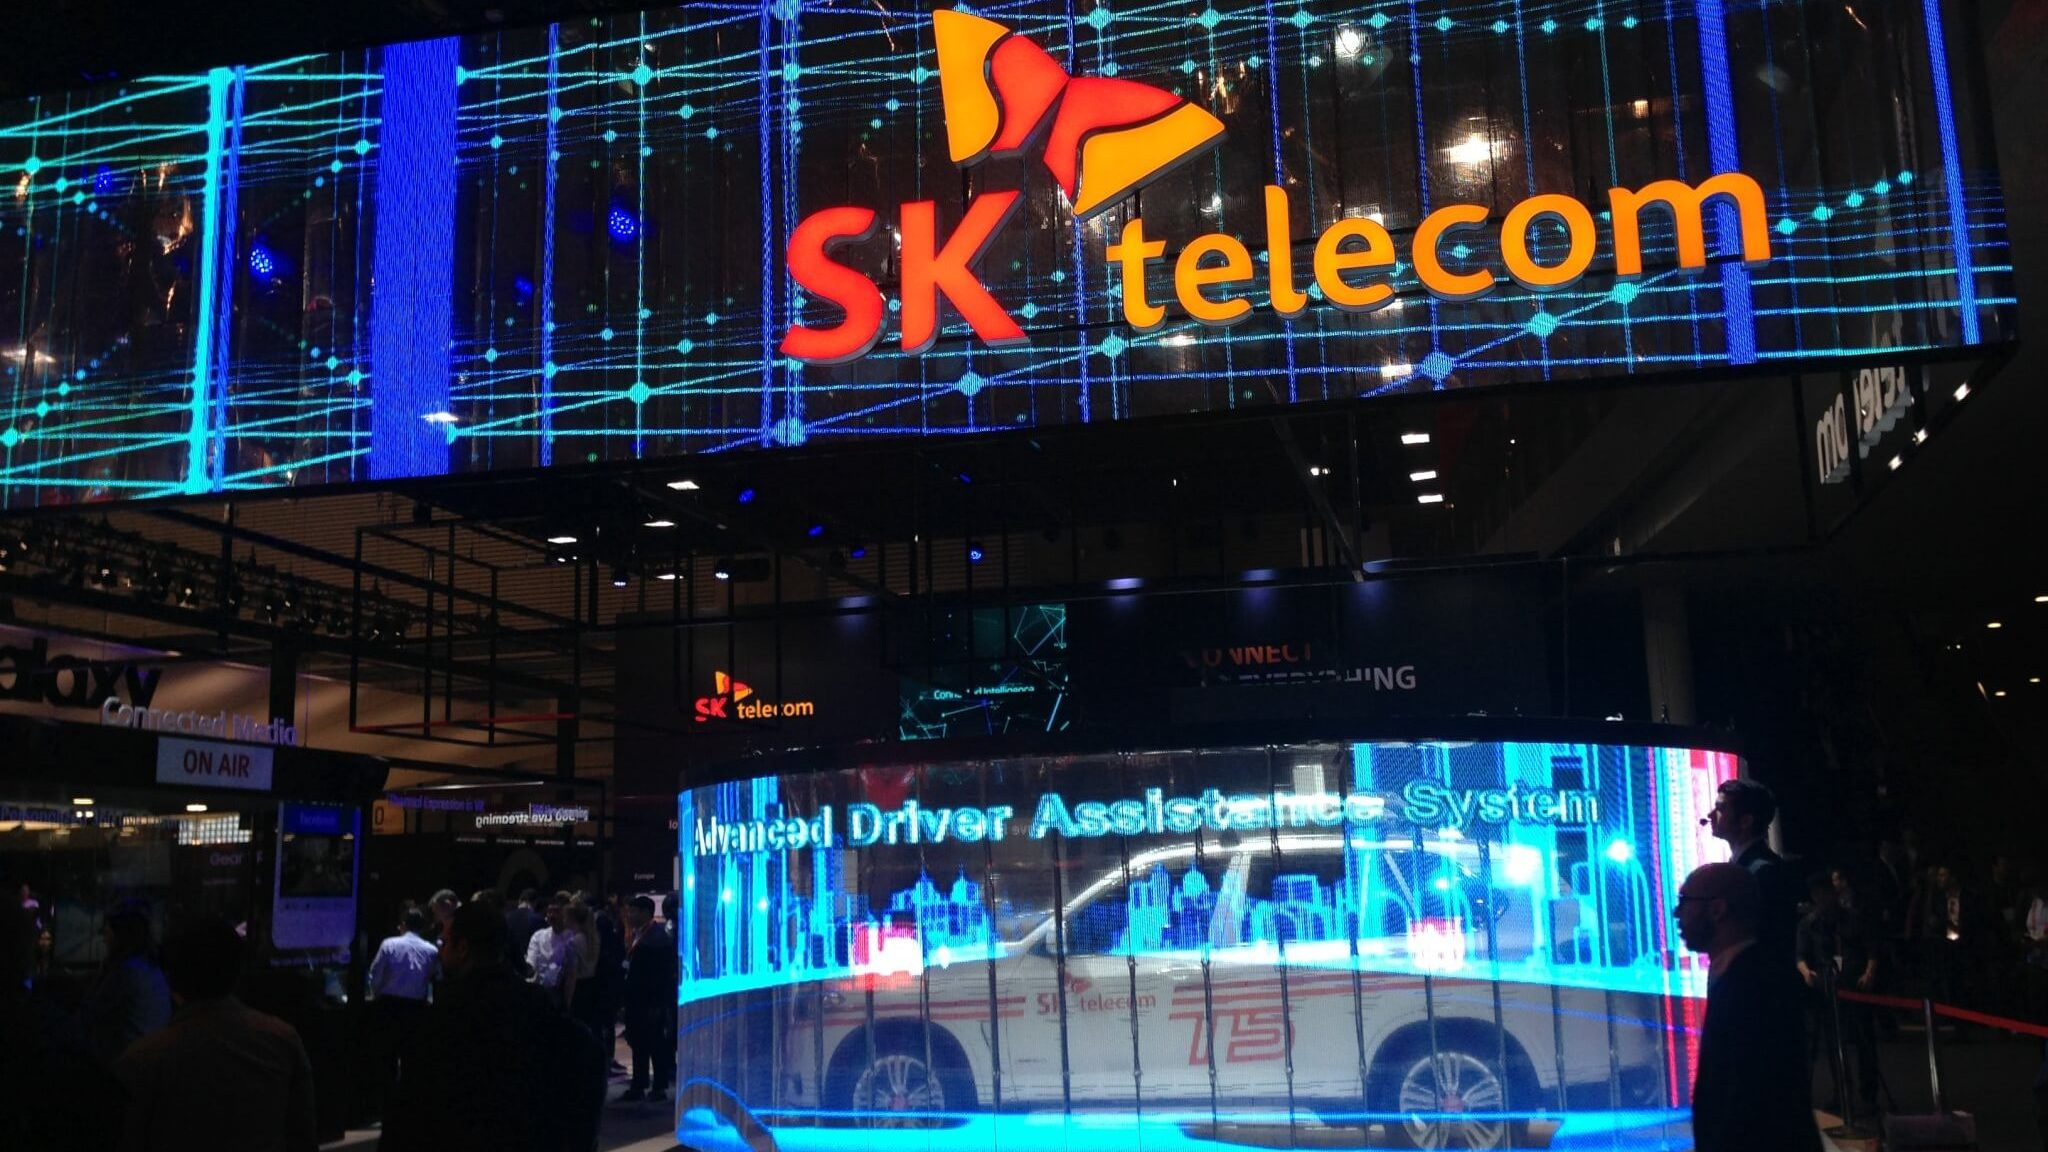 South Korea delays commercial 5G service over phone and carrier